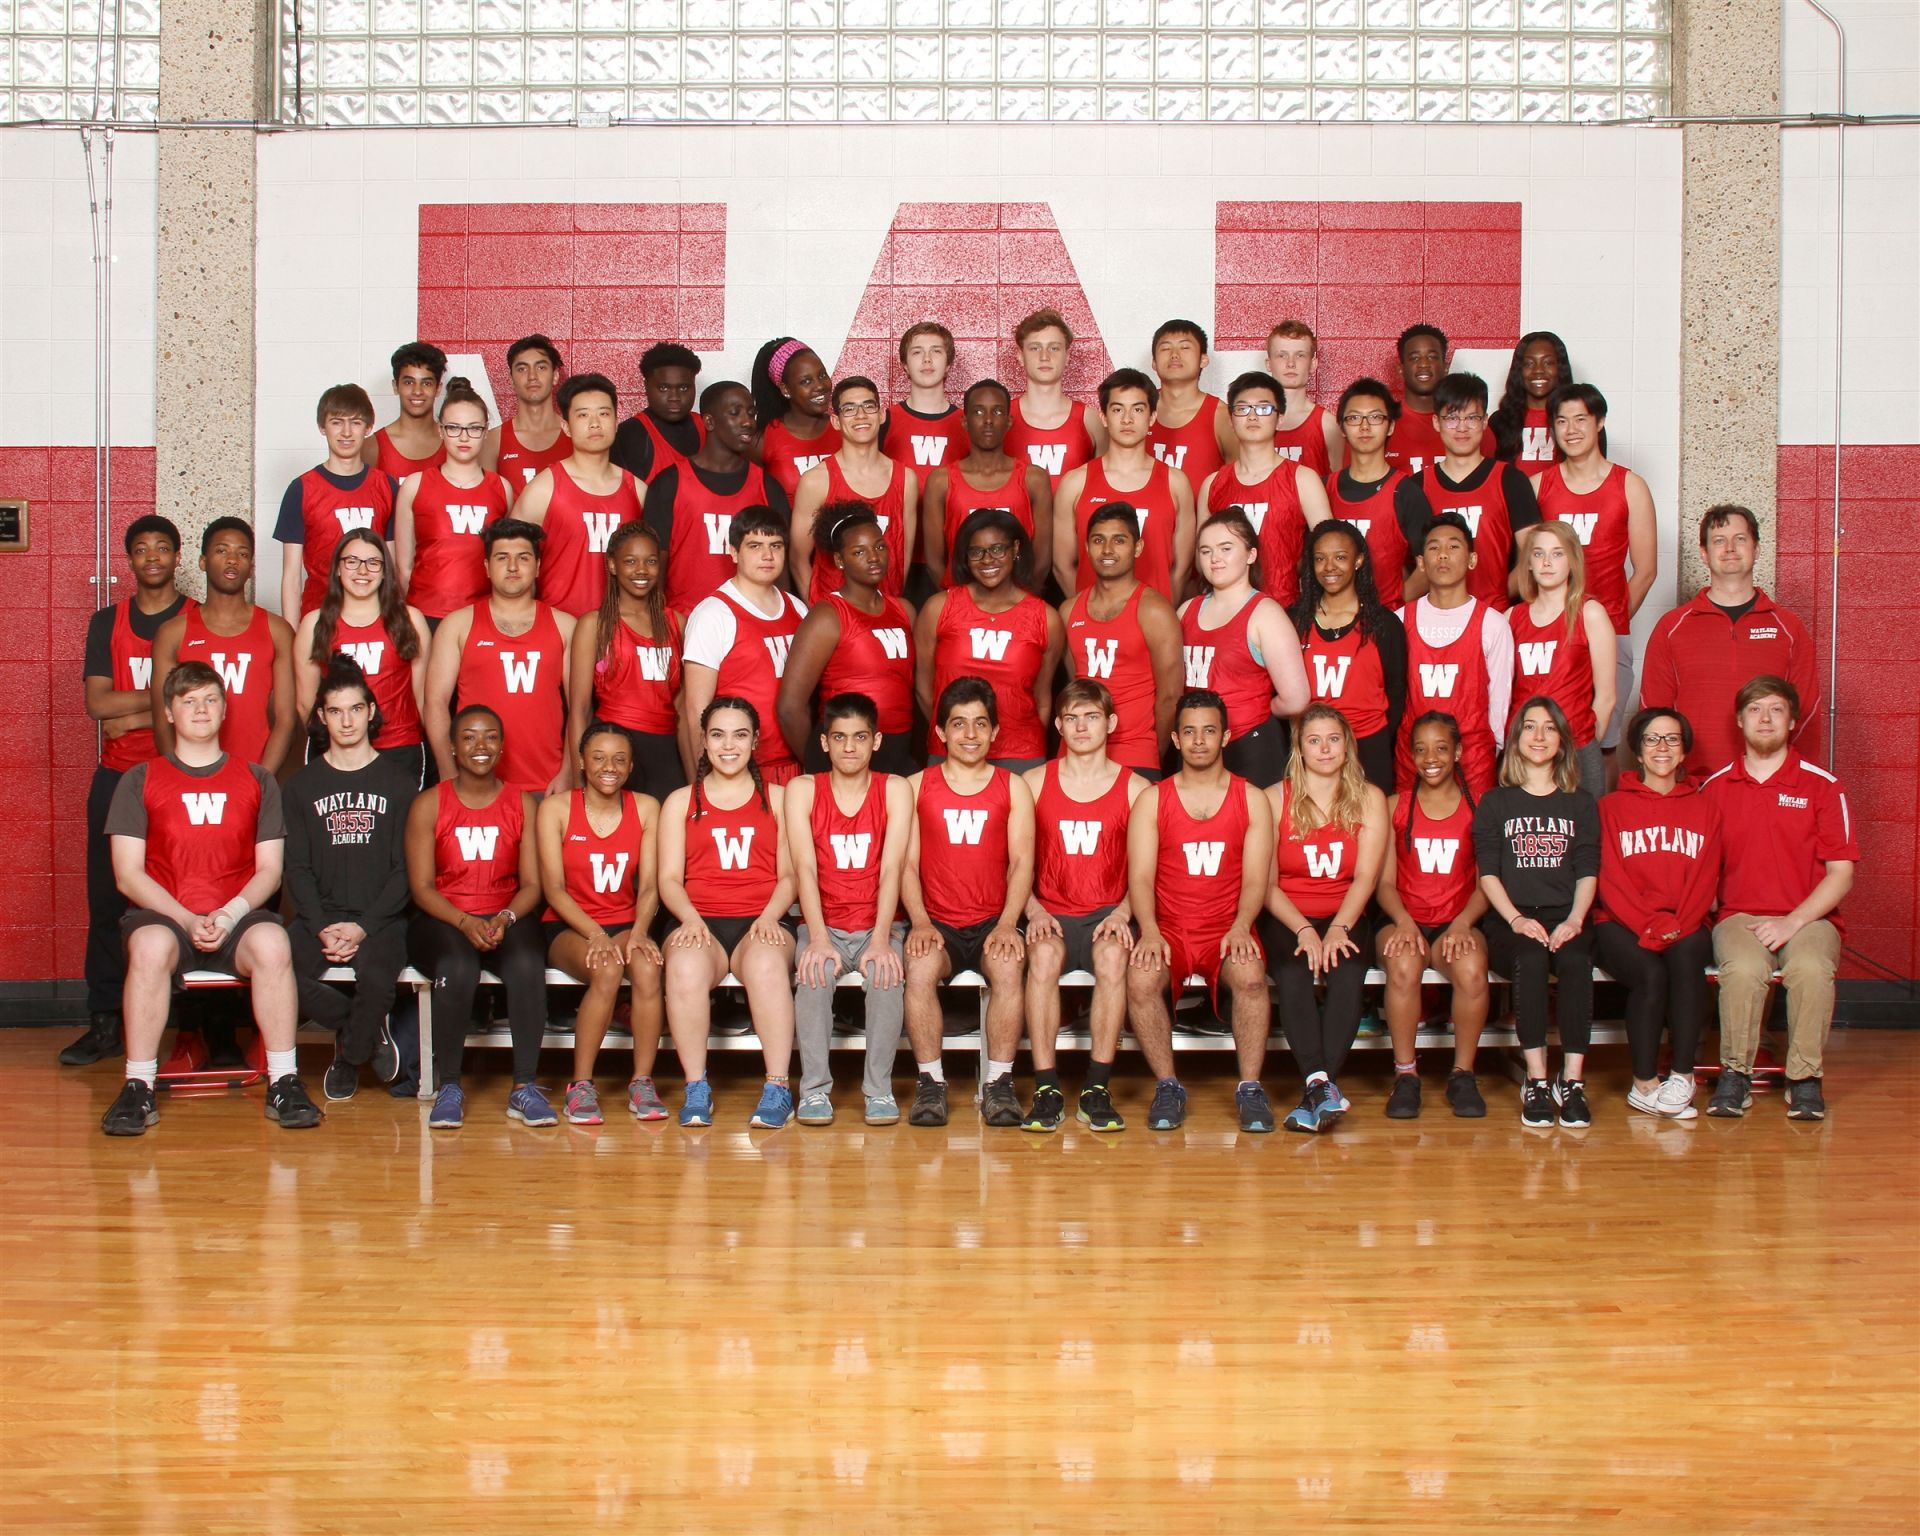 The Wayland Academy 2018 Track team.